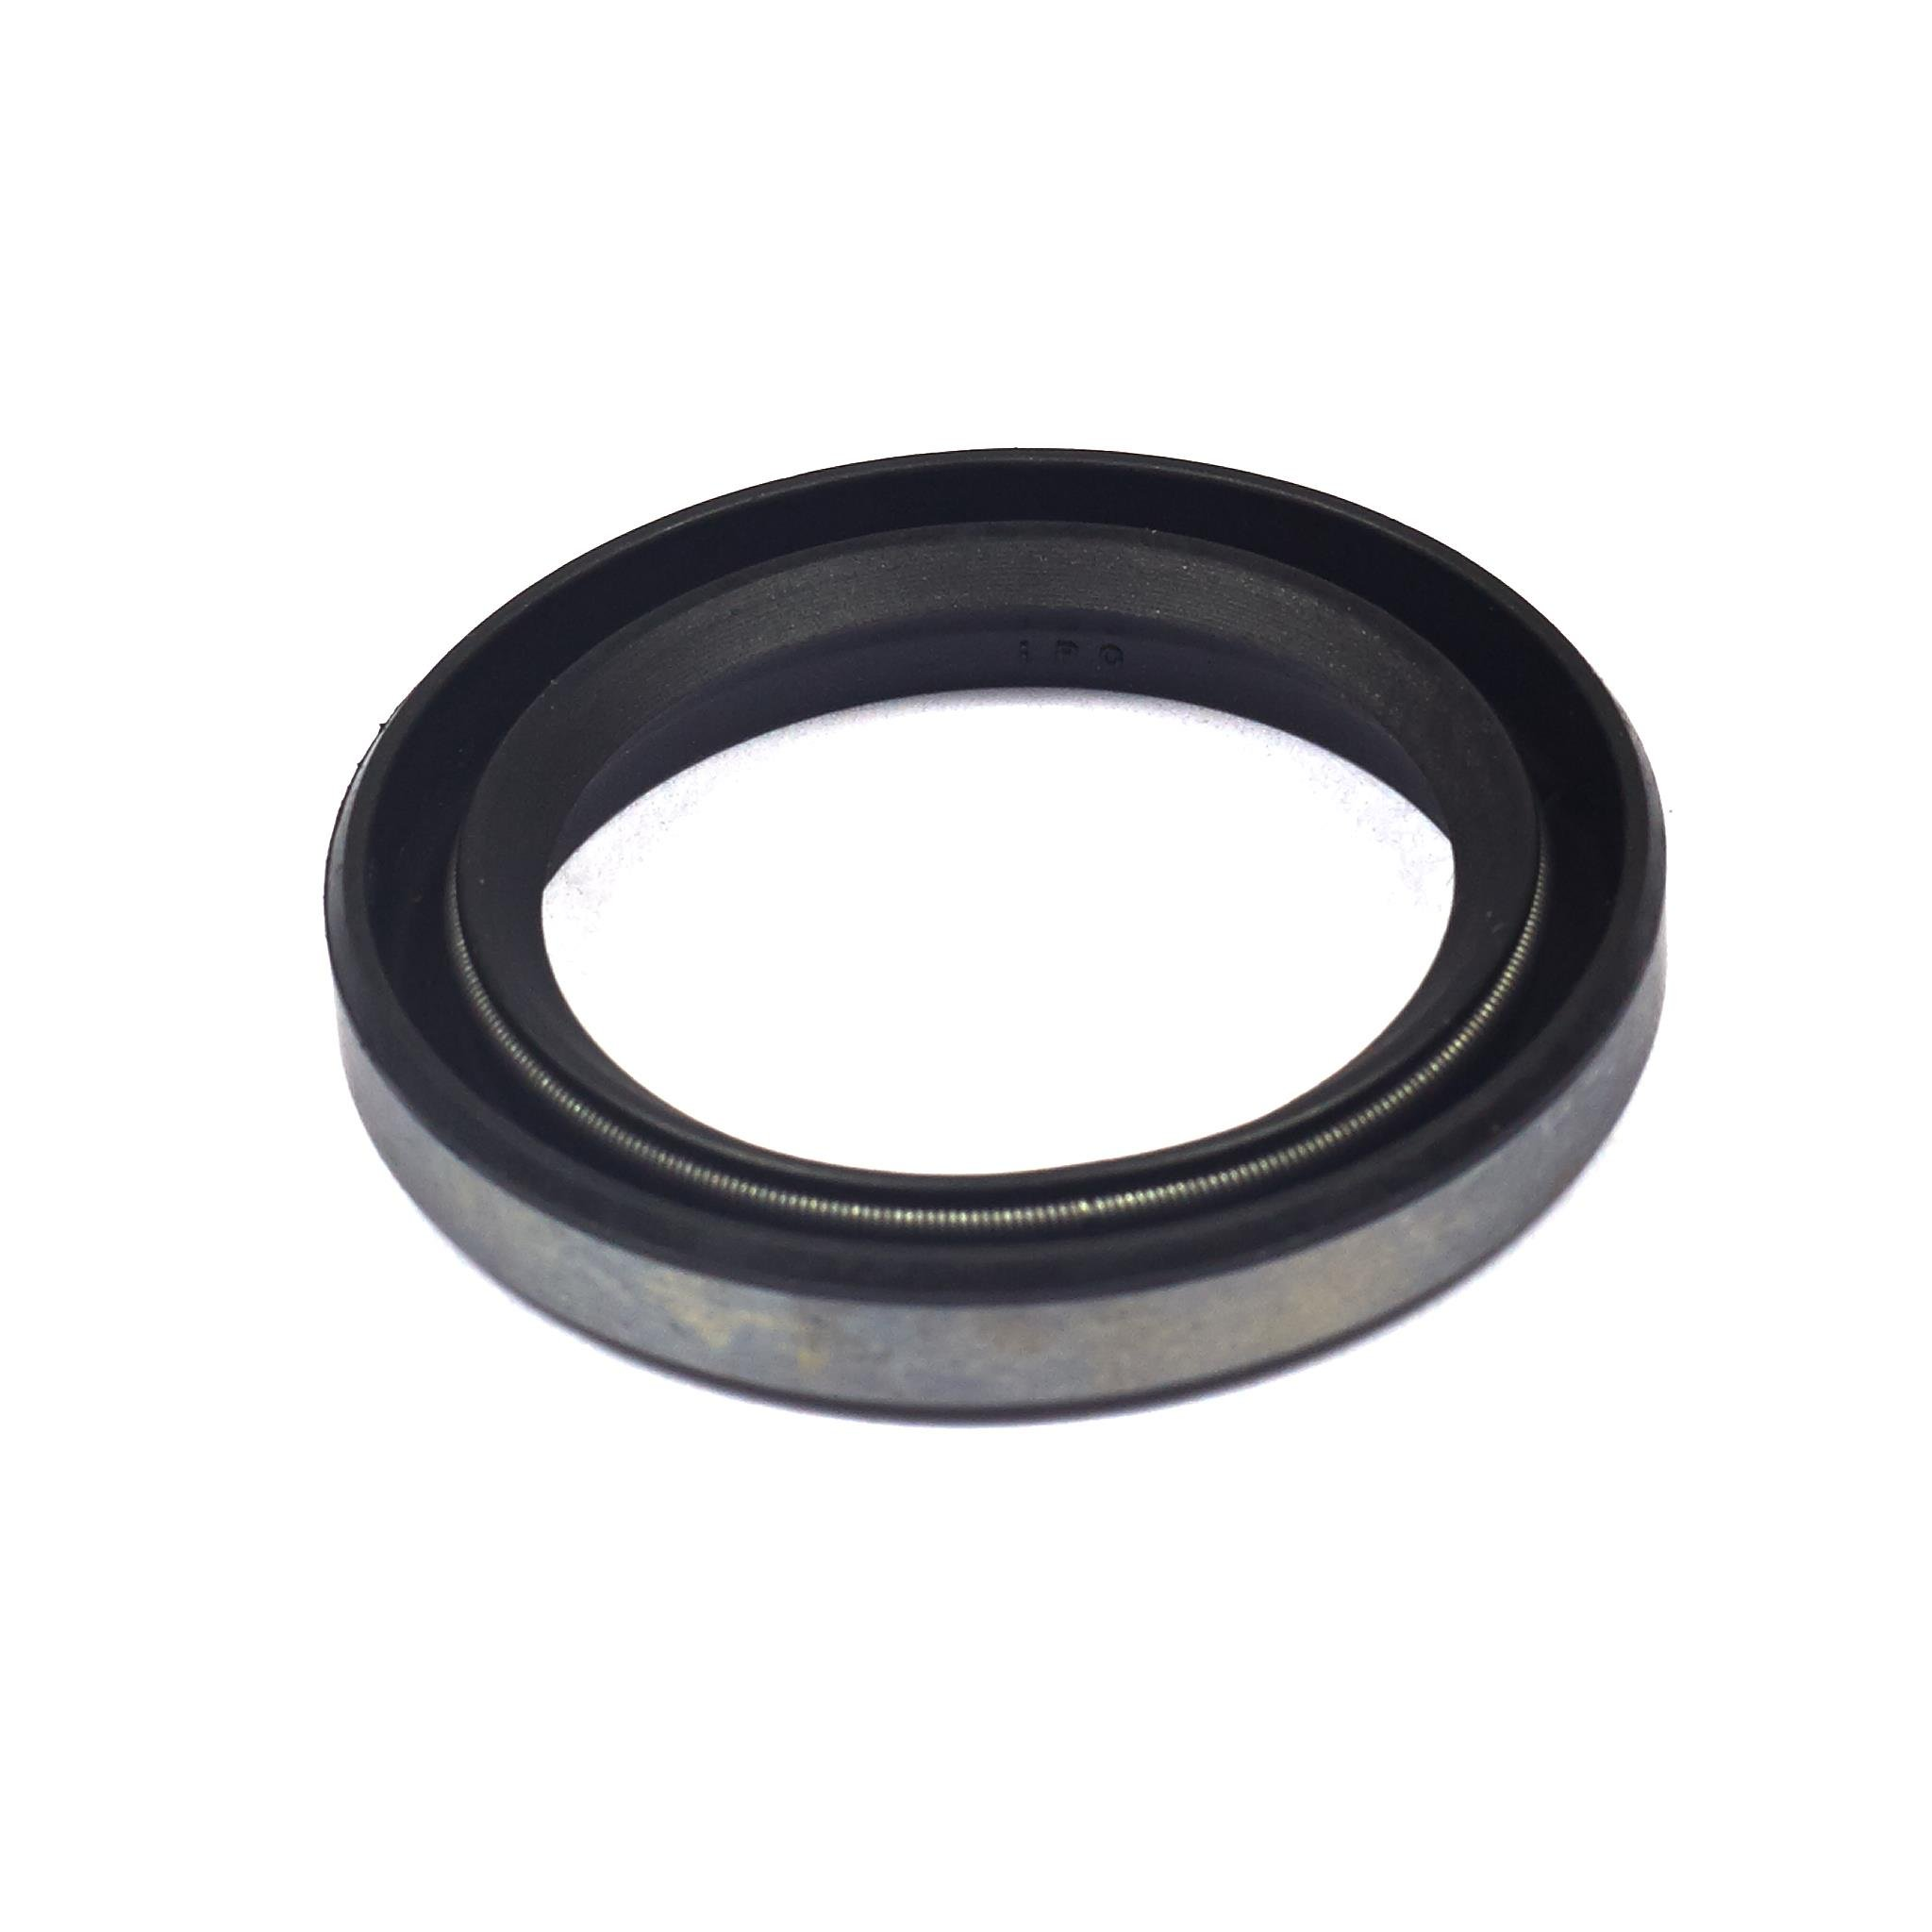 Briggs & Stratton 391086S Oil Seal Replaces 391086/290932/298423 by Briggs & Stratton (Image #1)